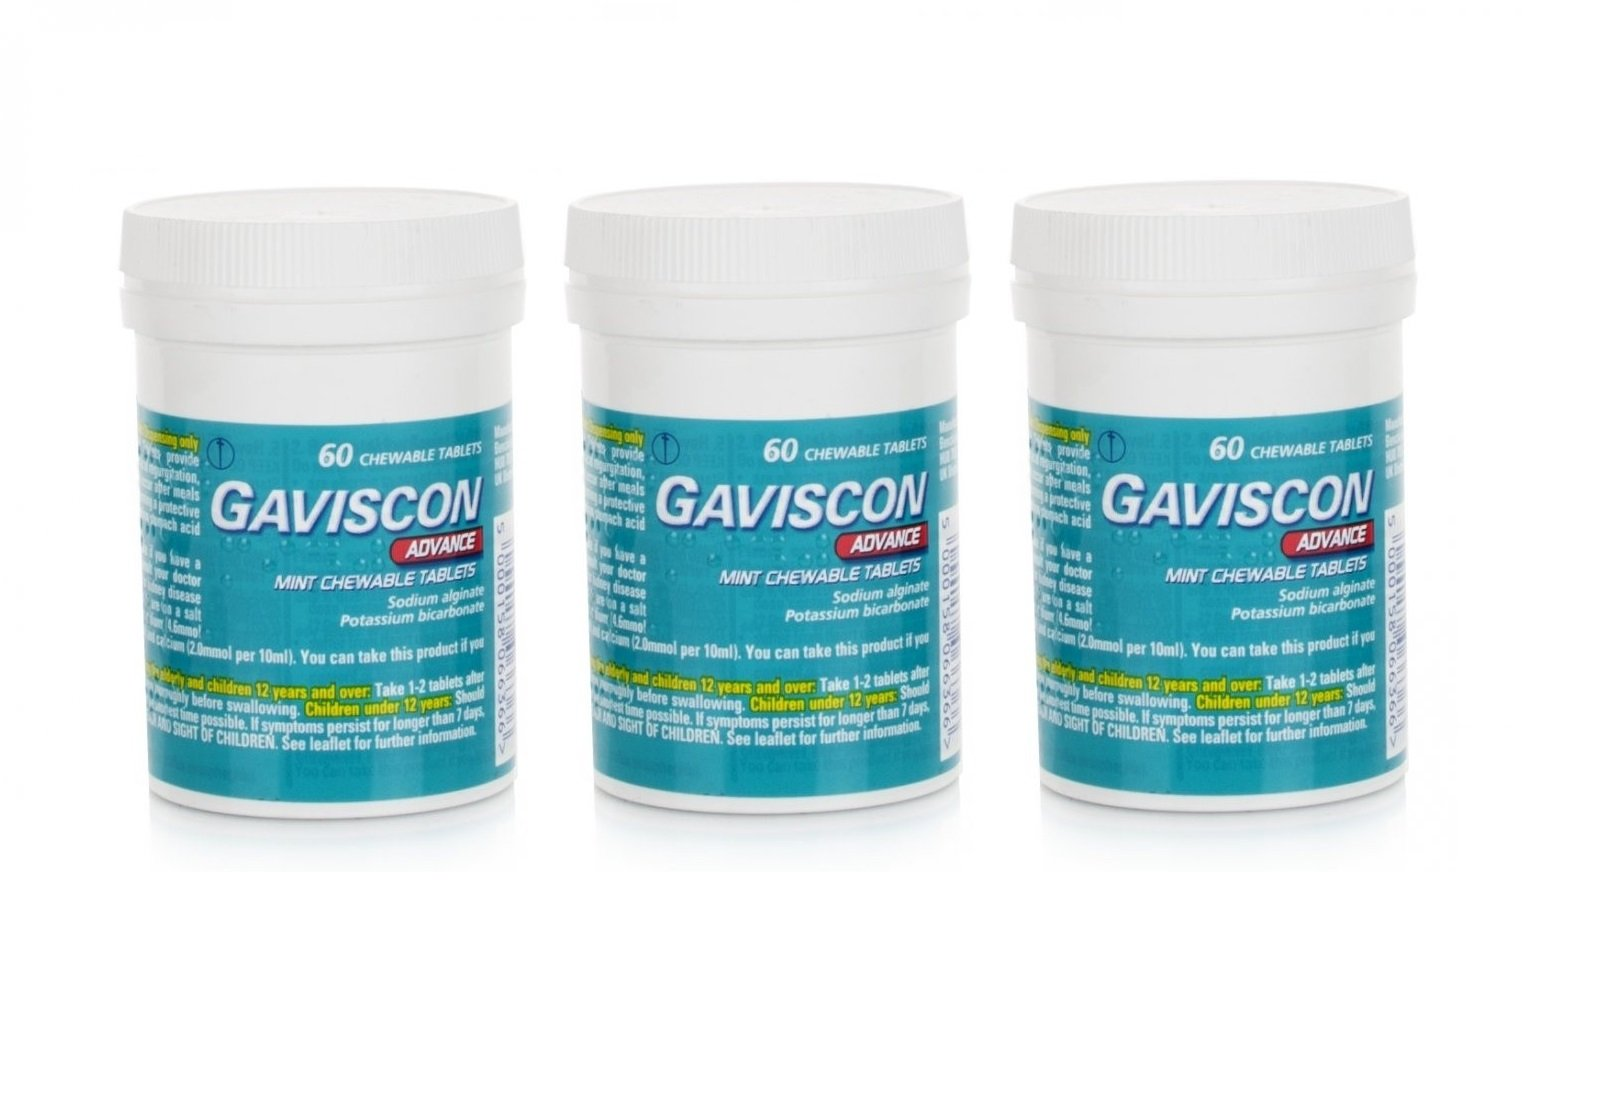 Gaviscon Advance Chewable 60 Tablets Peppermint Pack of 3 by Gaviscon Advanced Mint Chewable Tablets